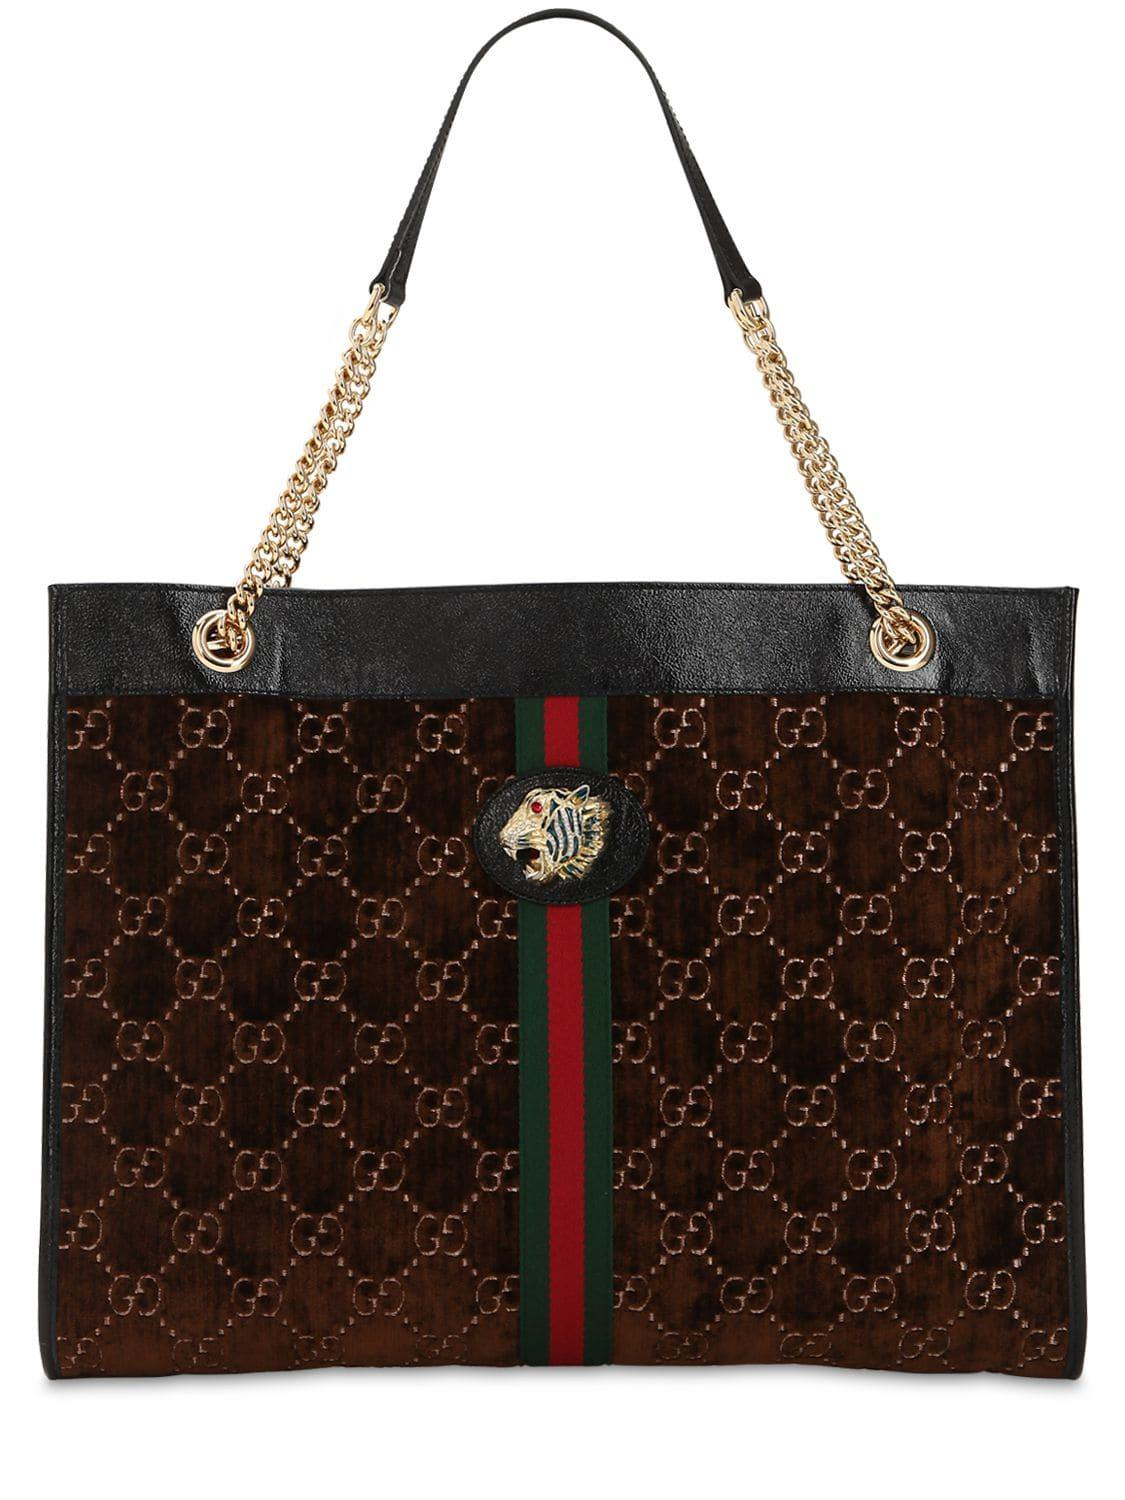 996824a1e8d Lyst - Gucci Large Rajah Gg Velvet Tote Bag in Brown